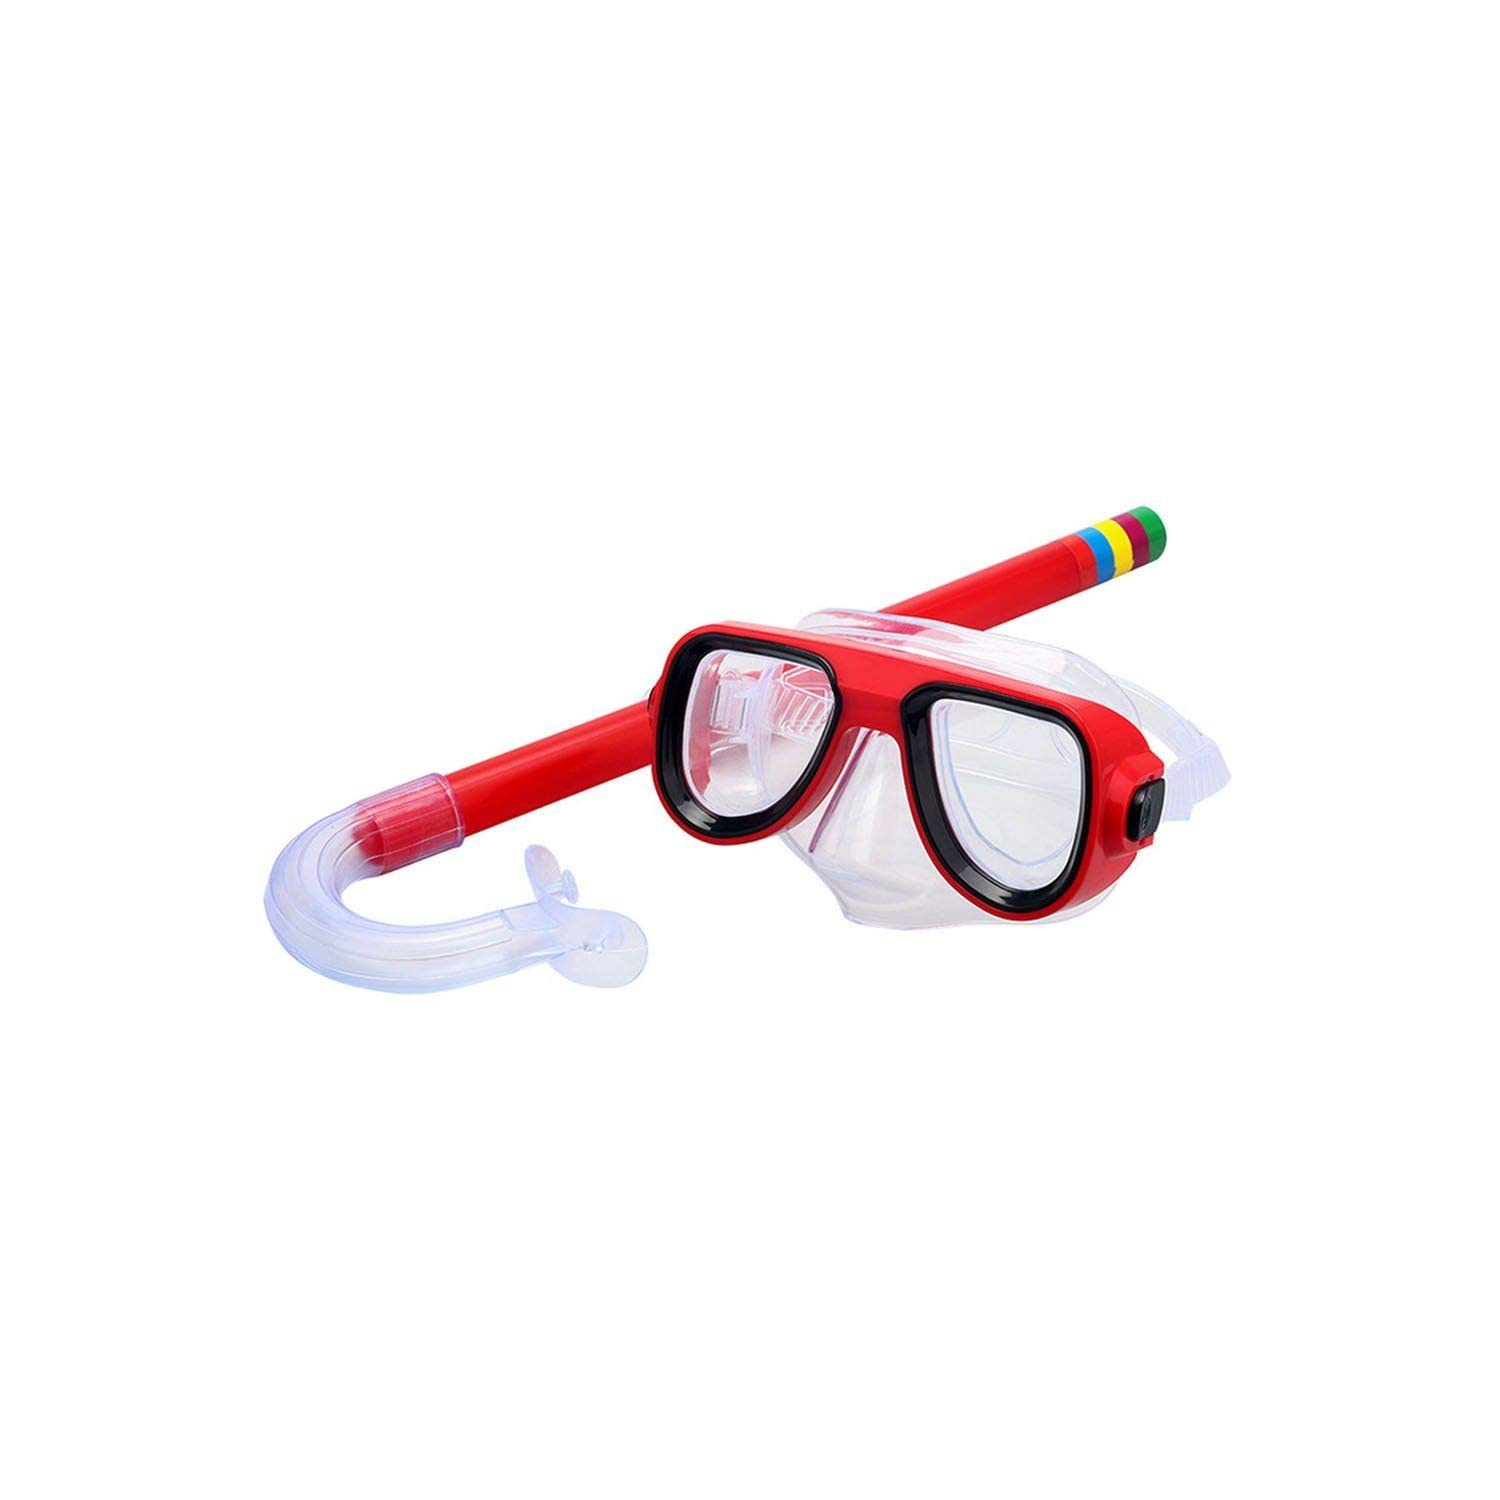 Fly-Town Children Swimming Goggles Snorkeling Diving + Breathing Tube 5 Colors Swimming Water Sports Glasses Diving Eyewear for Boy Girl,Red,One Size by Fly-Town